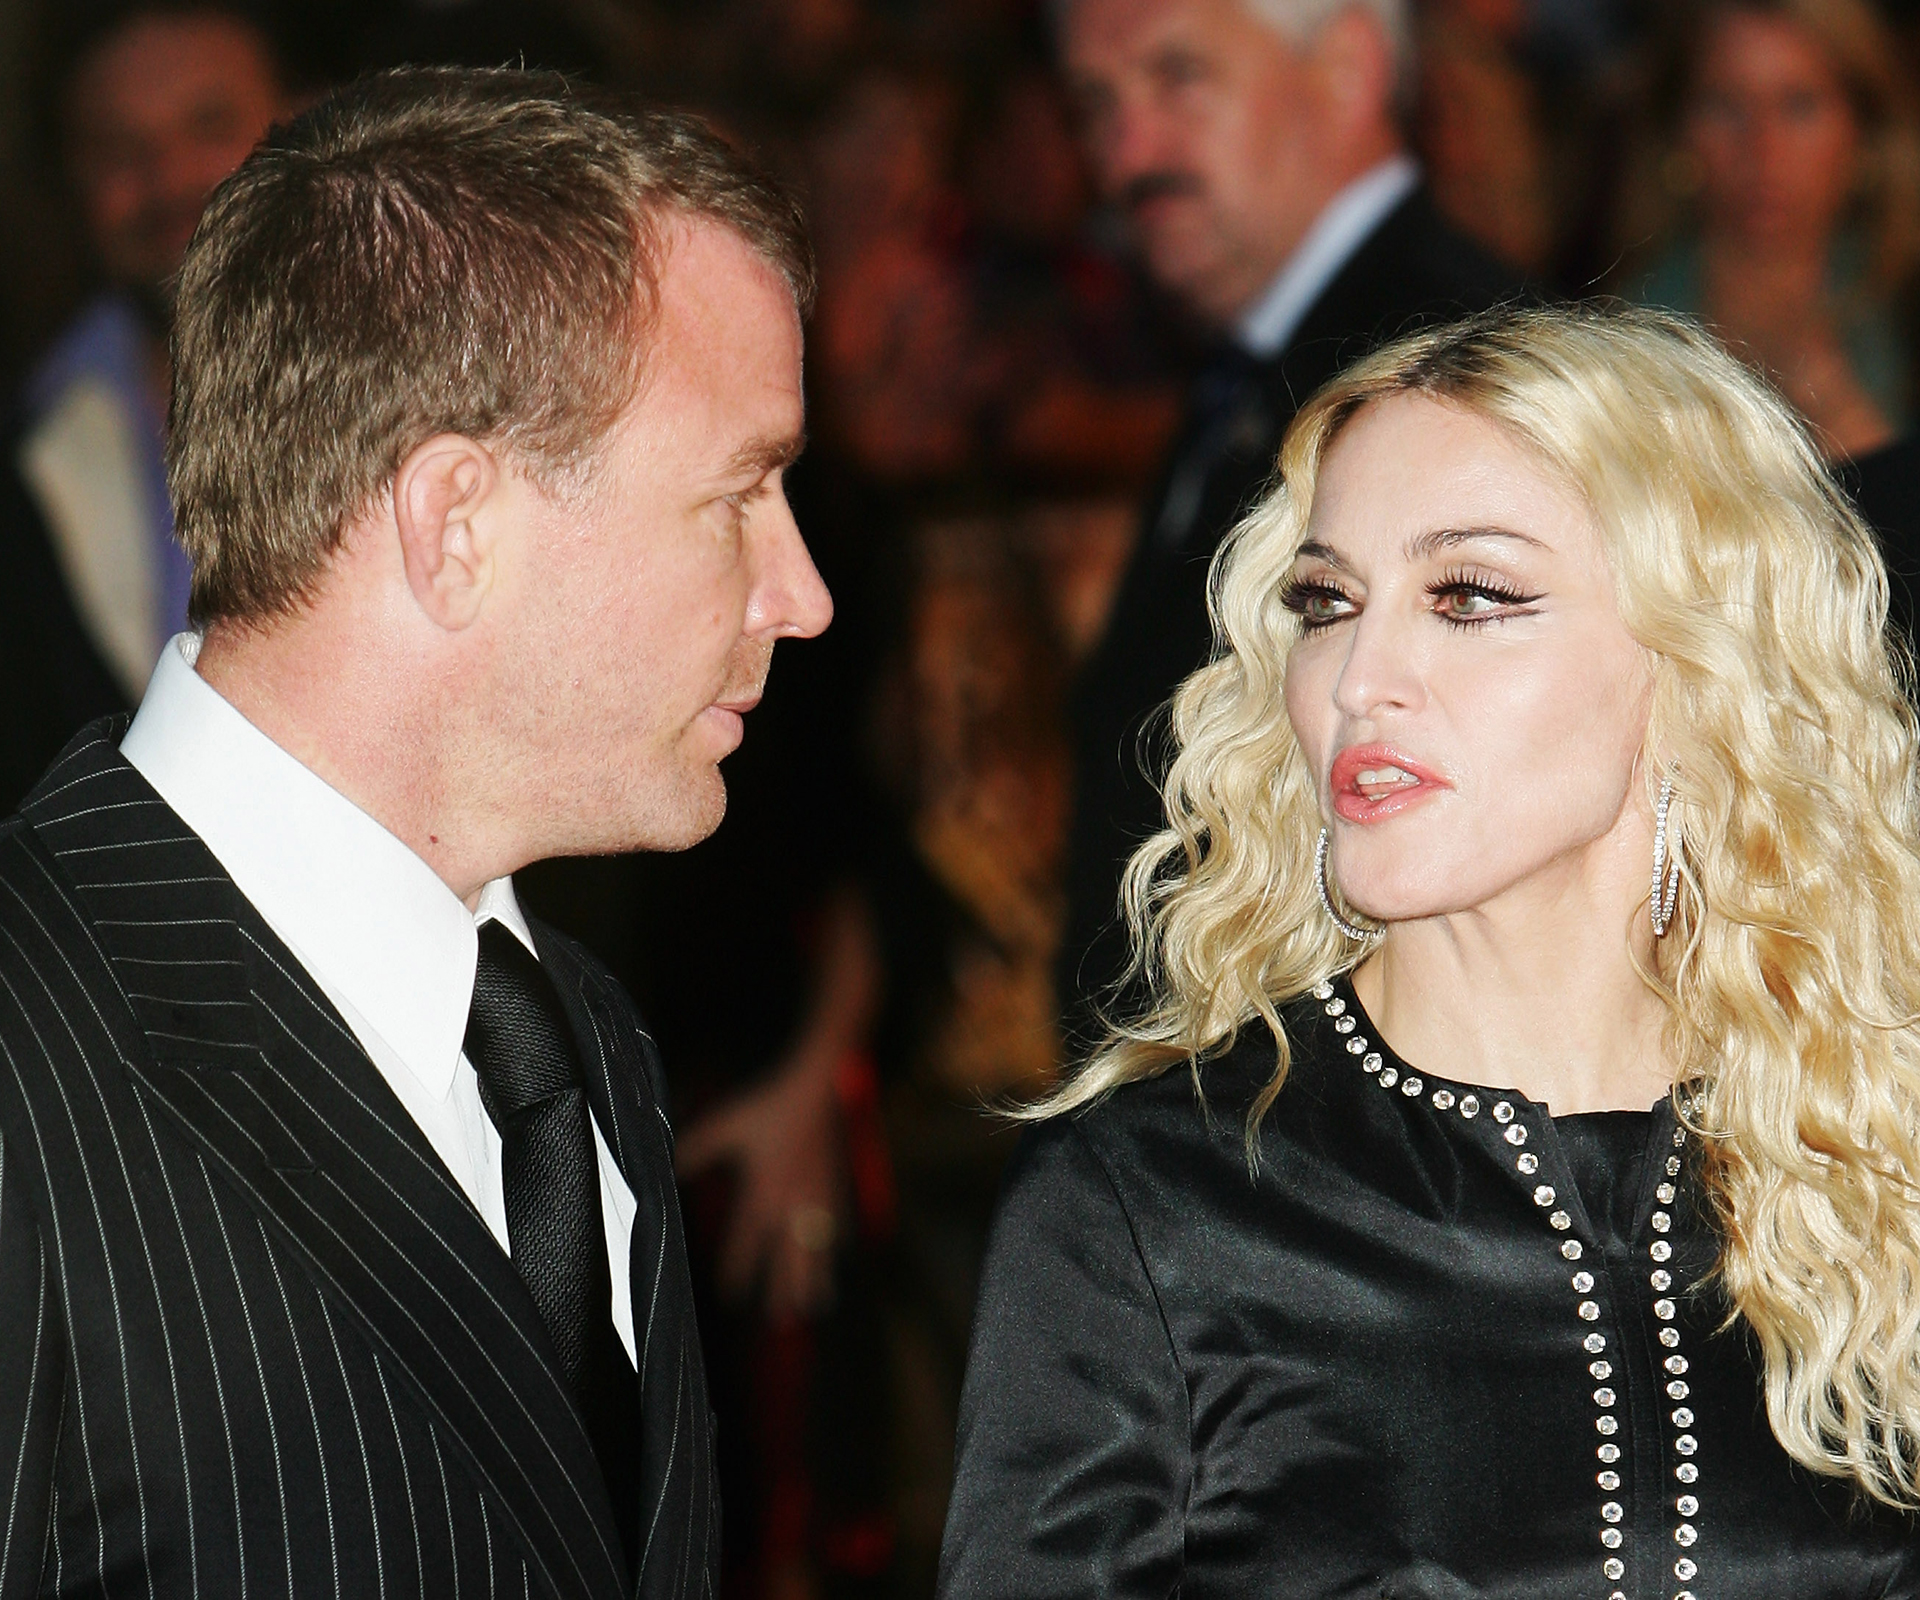 Madonna shocks fans with colourful on-stage rant over ex-husband